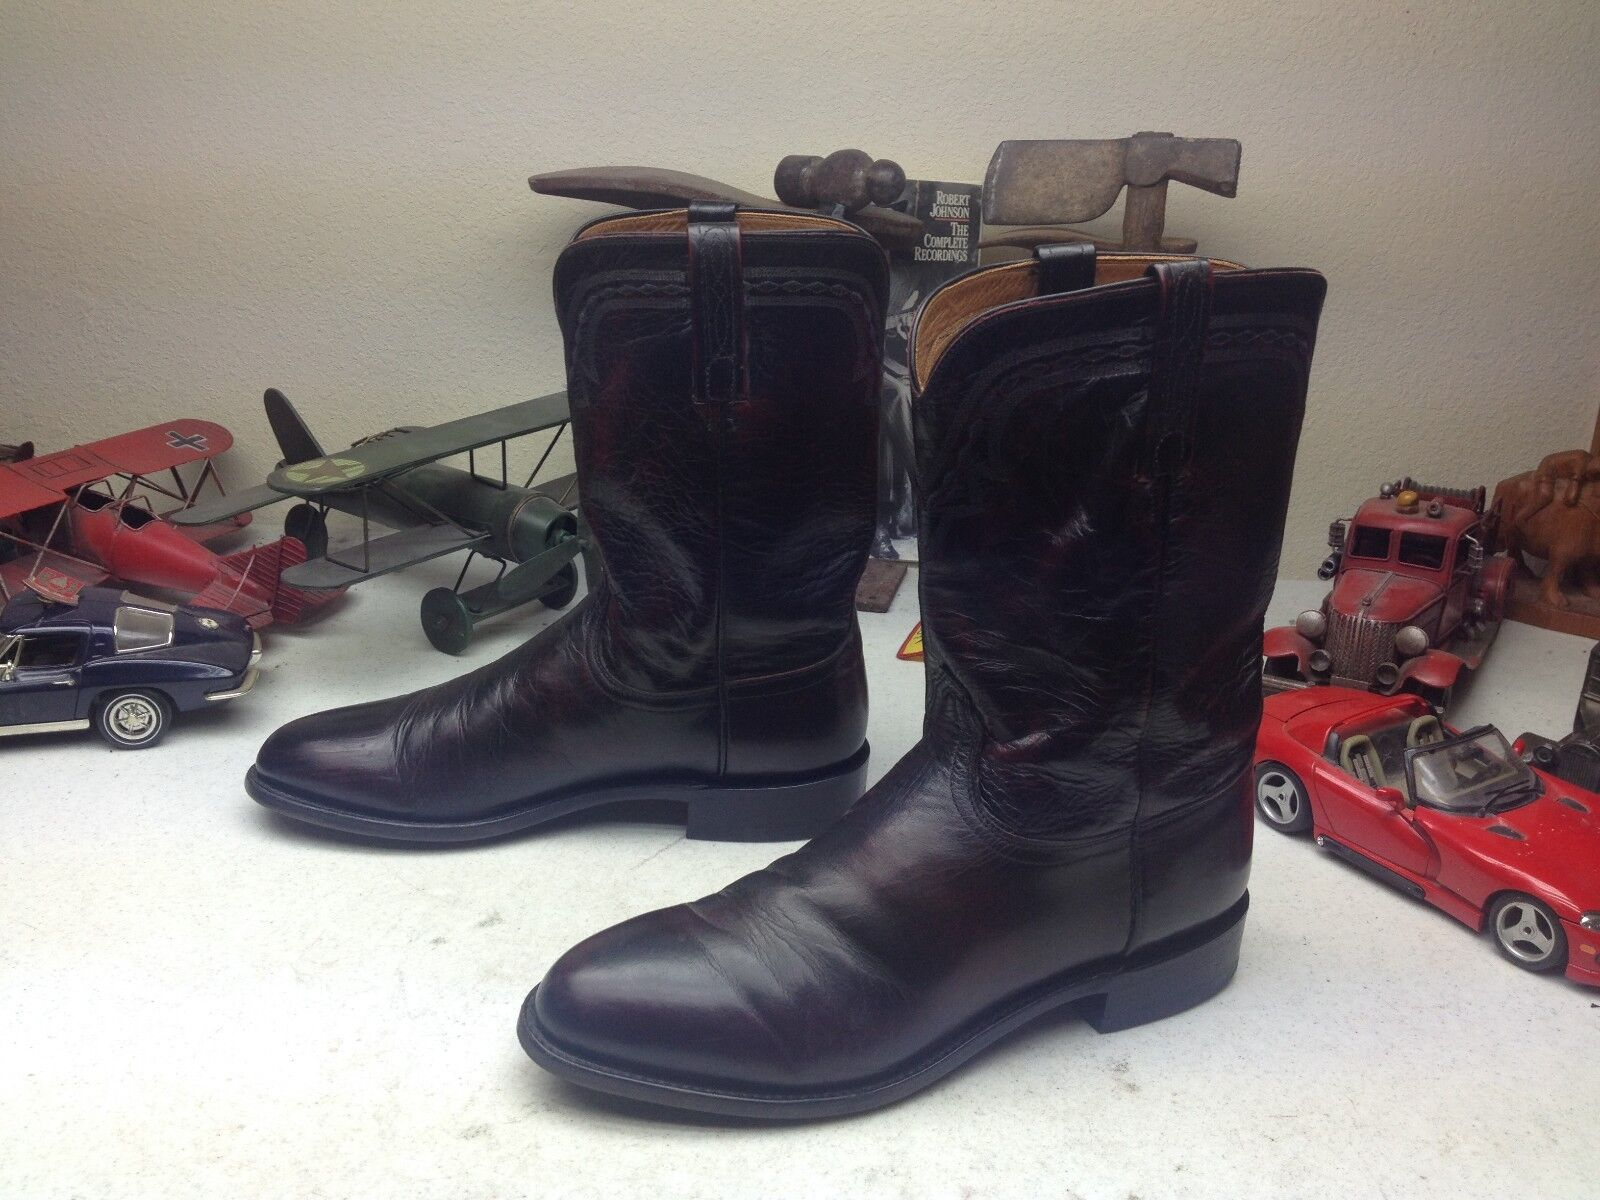 LUCCHESE USA schwarz CHERRY BRUSHOFF LEATHER ENGINEER TRAIL BOSS COWBOY Stiefel 11D